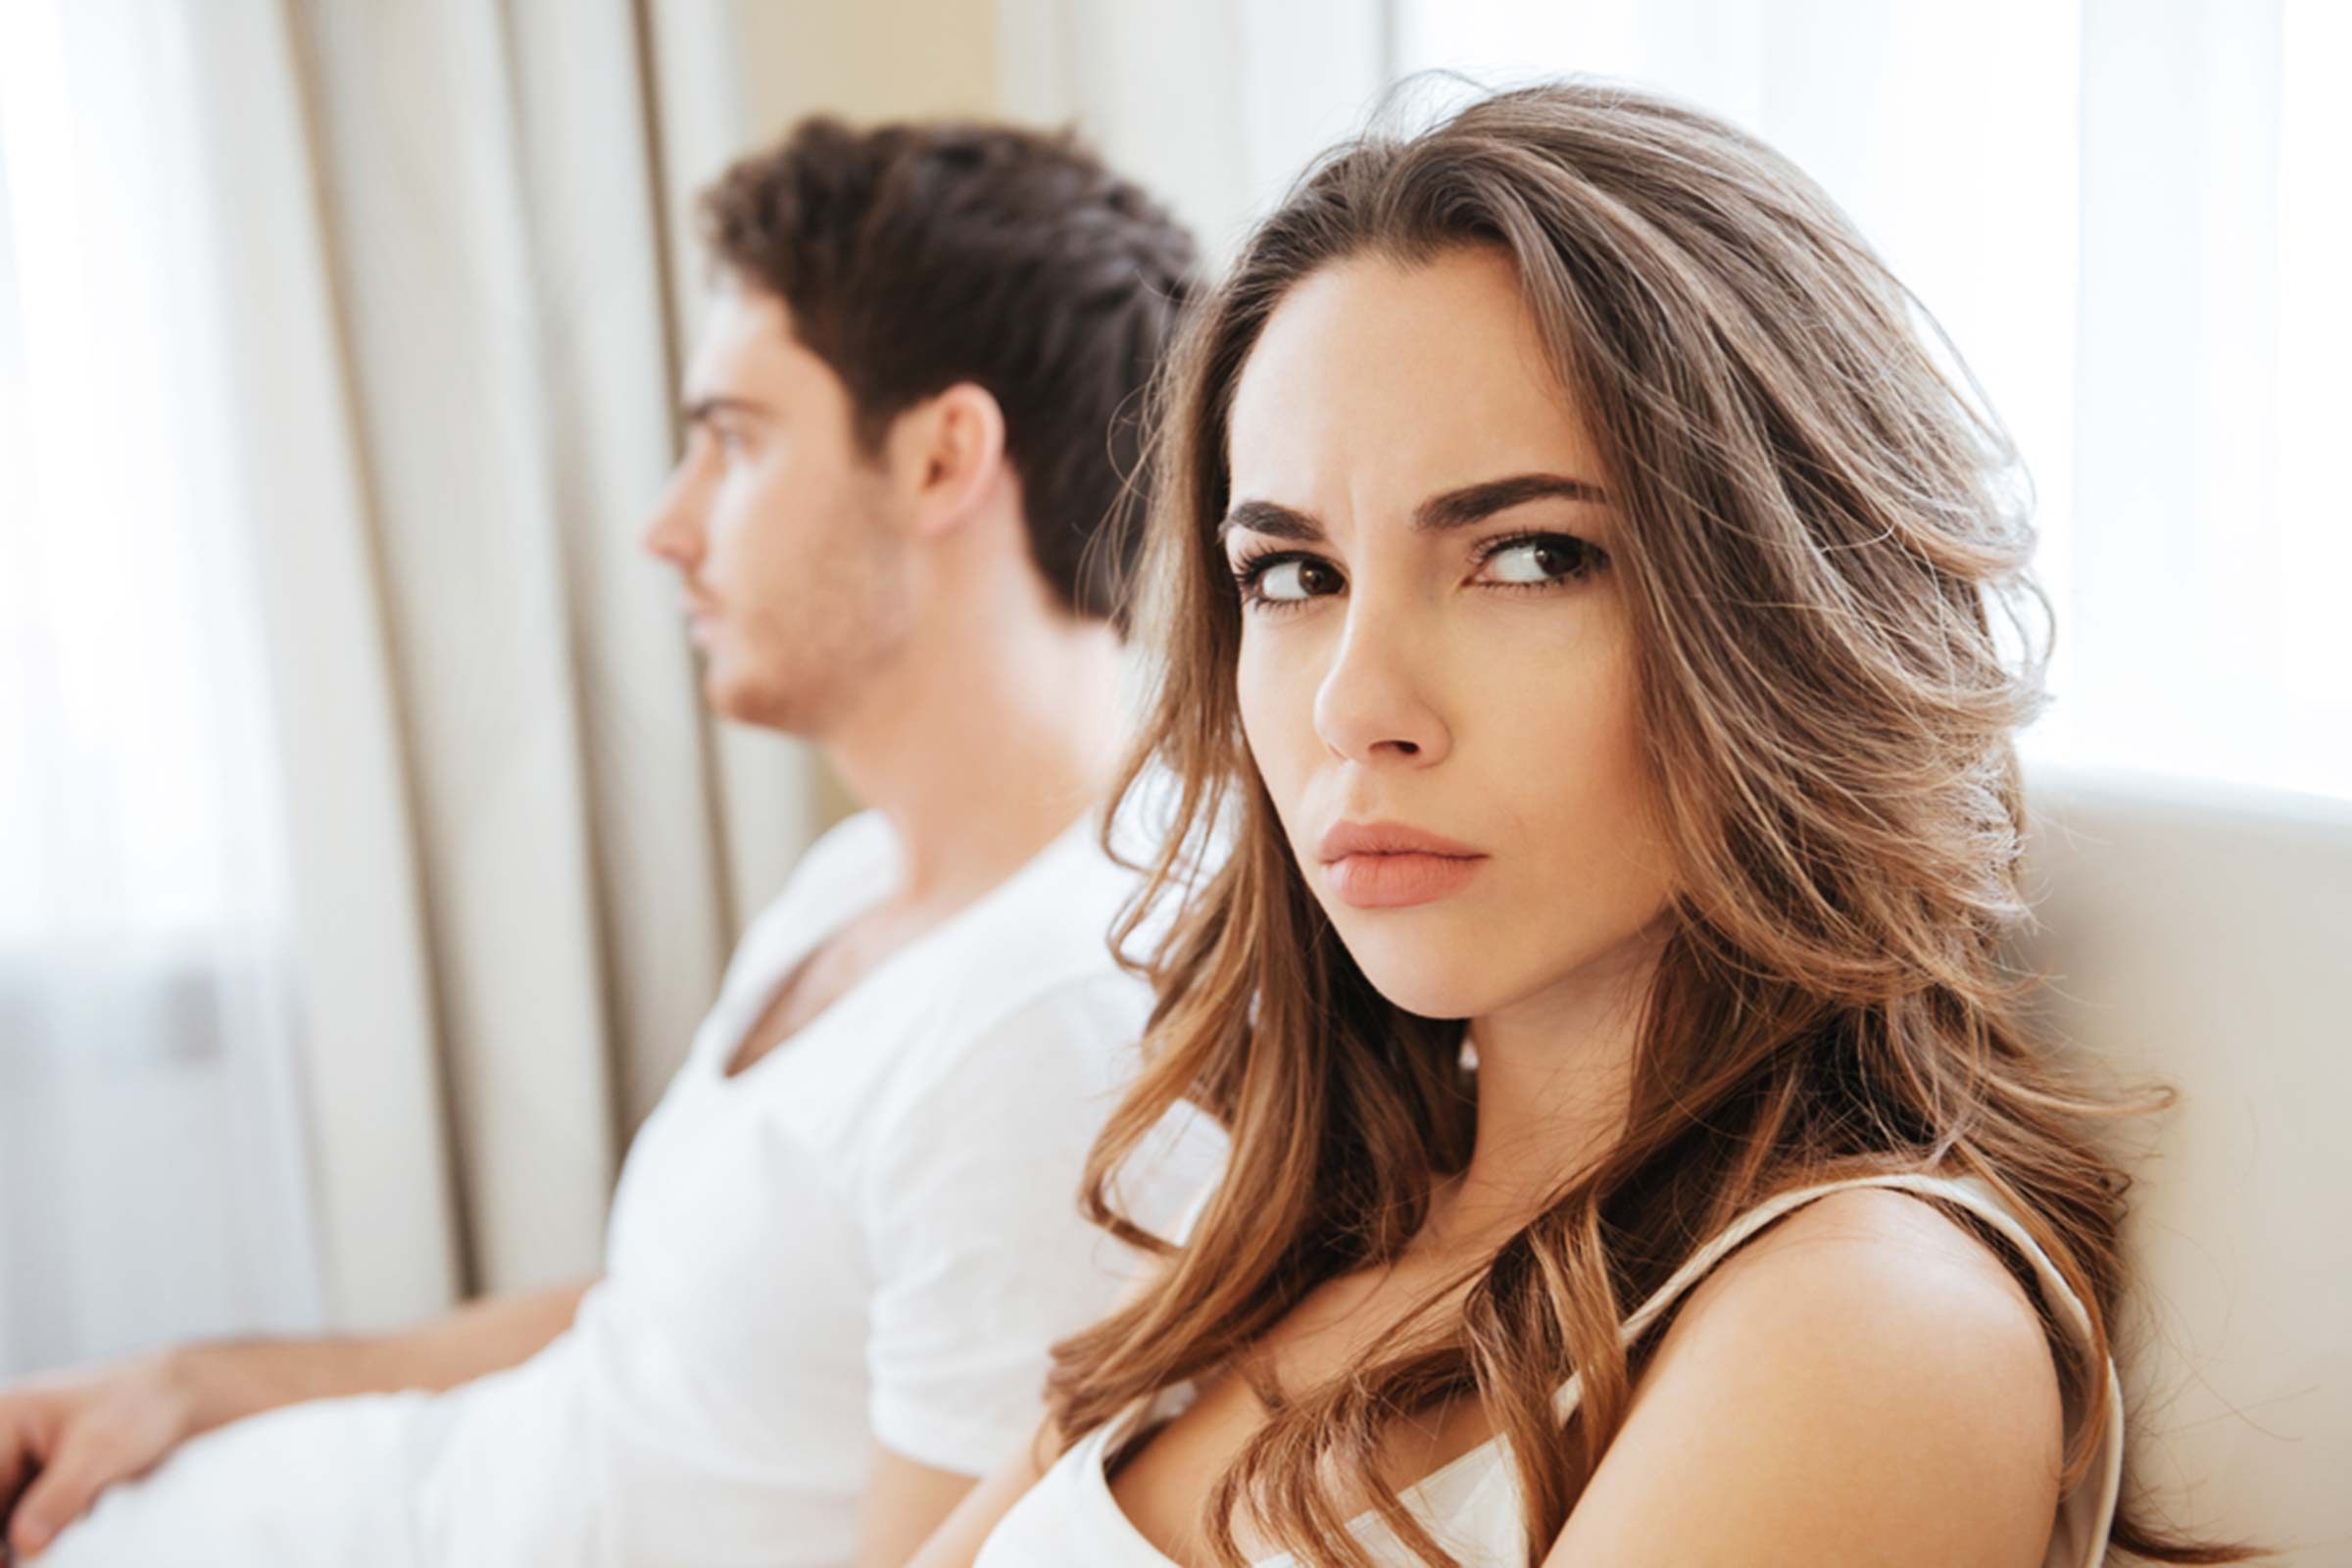 Fear of Intimacy: Silent Signs You Have Intimacy Issues